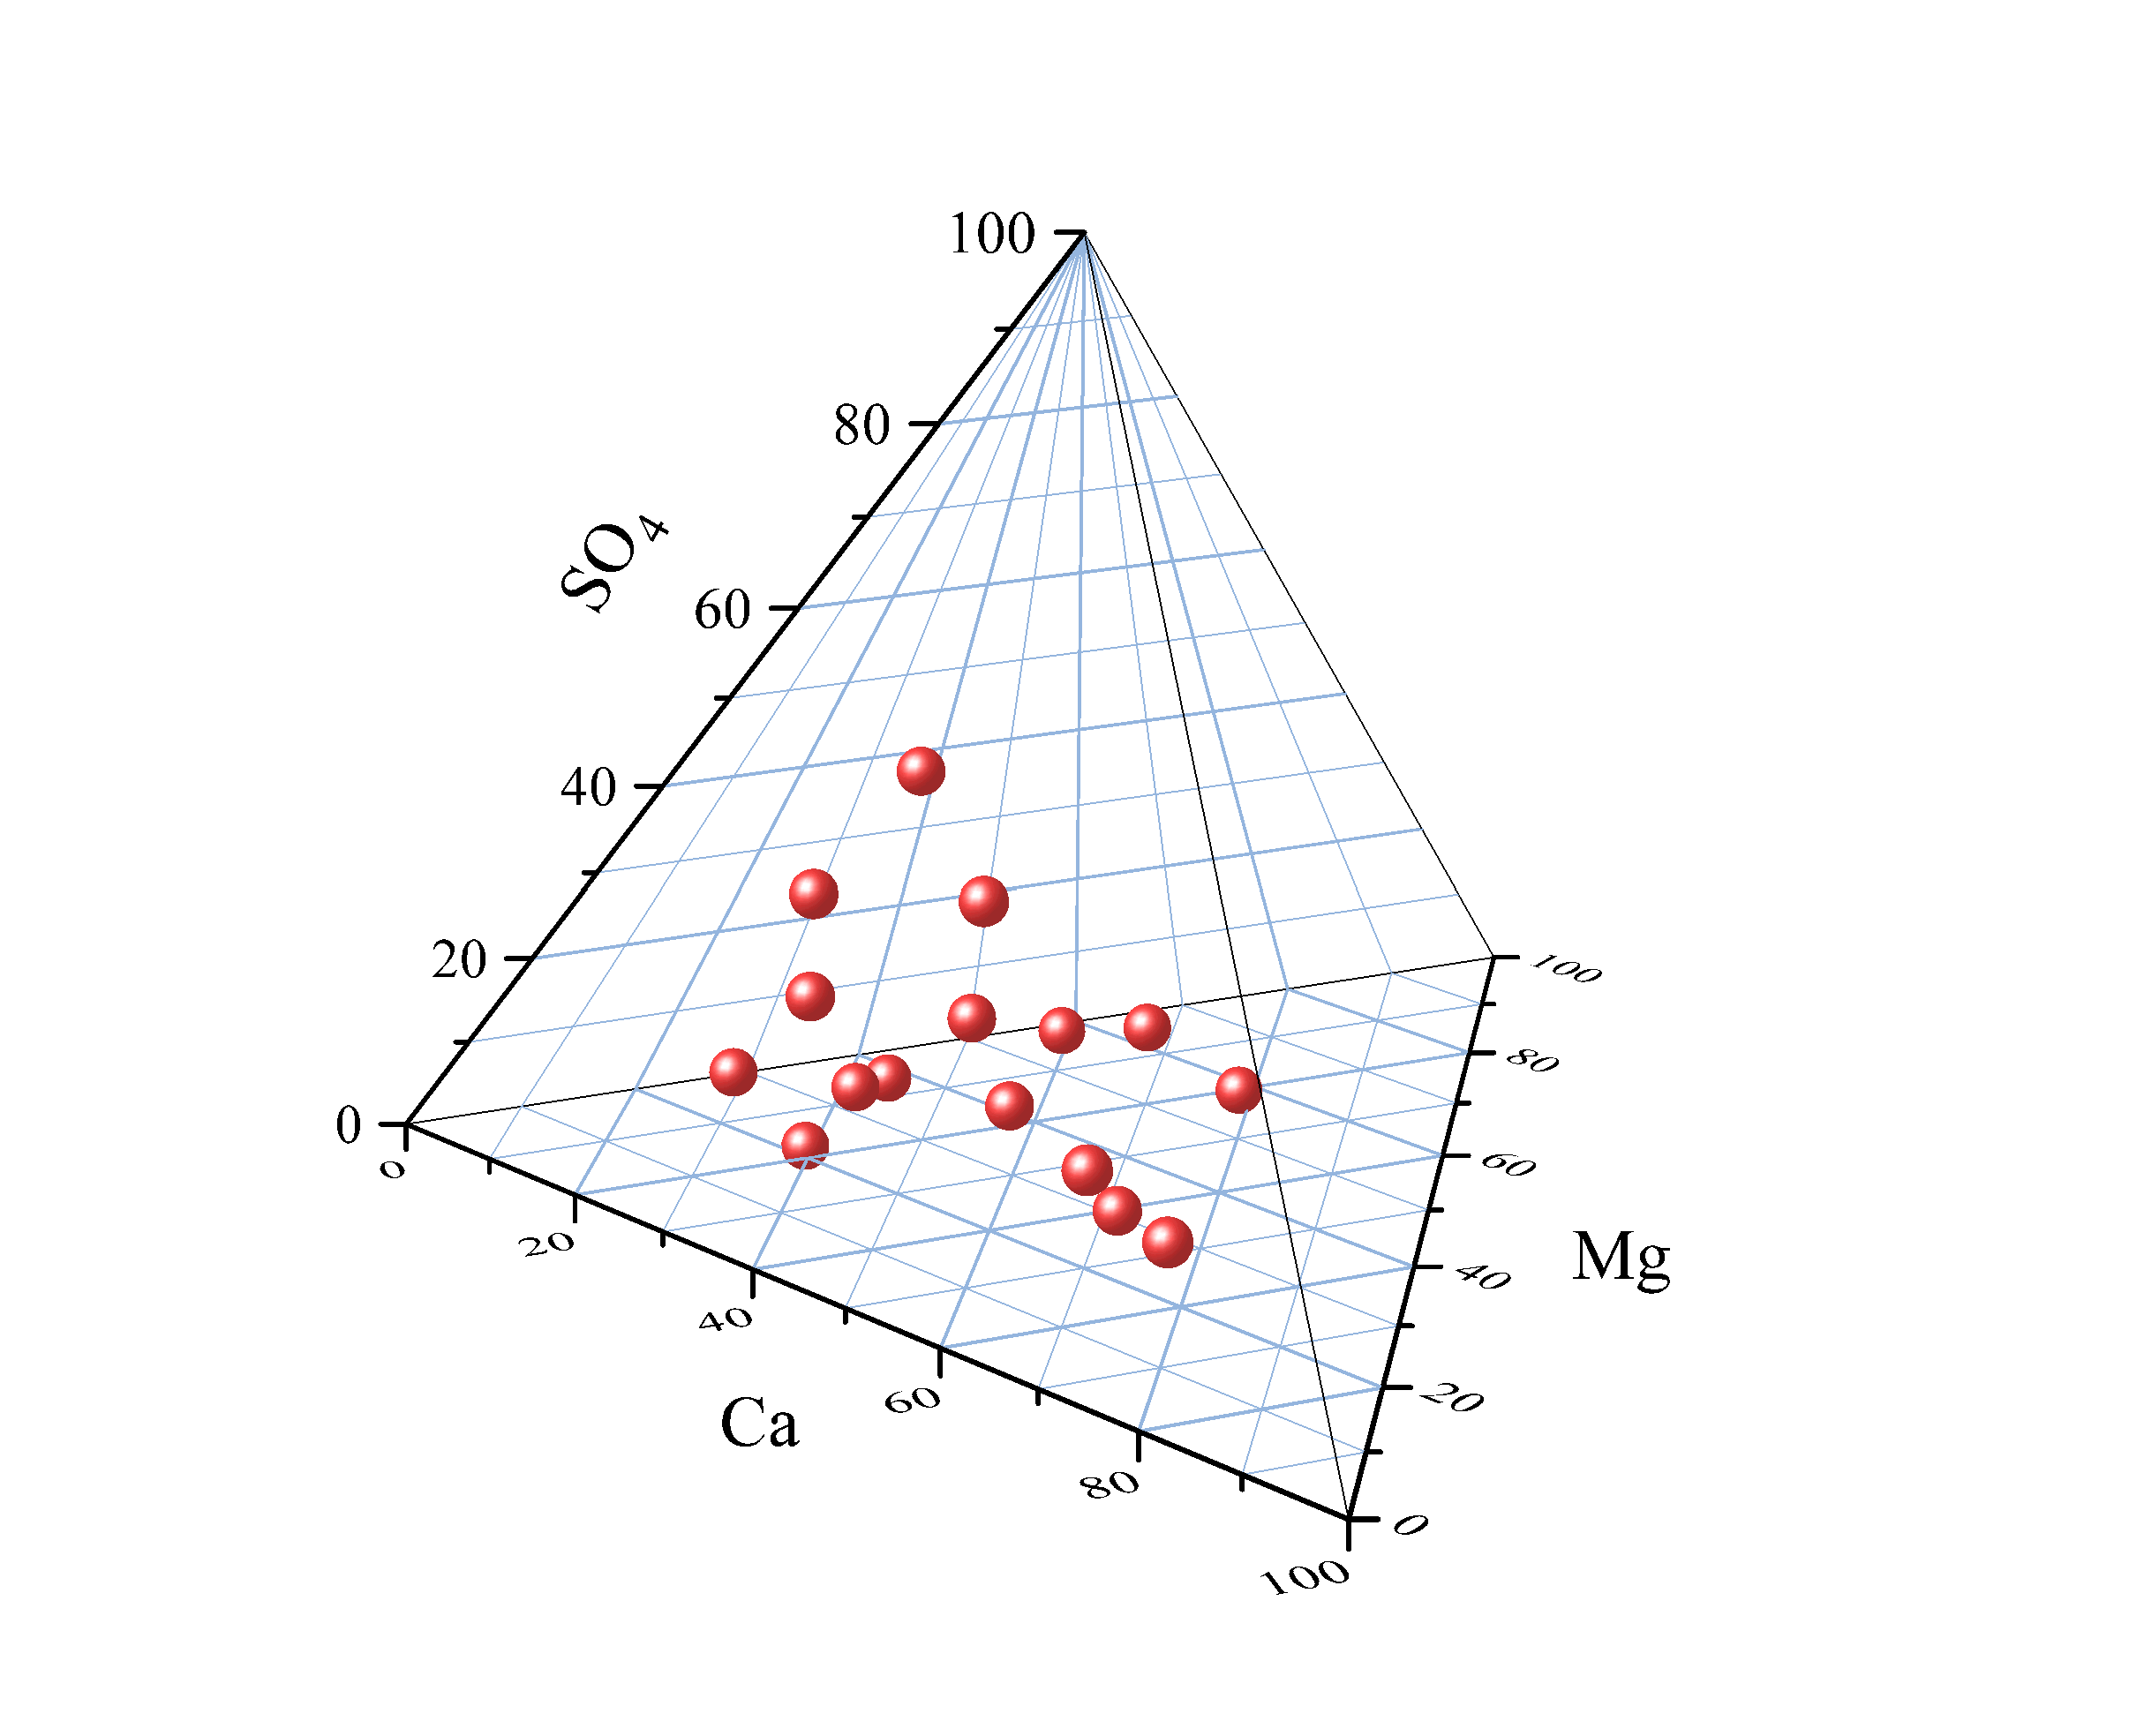 small resolution of tetrahedral plot from xyzz data